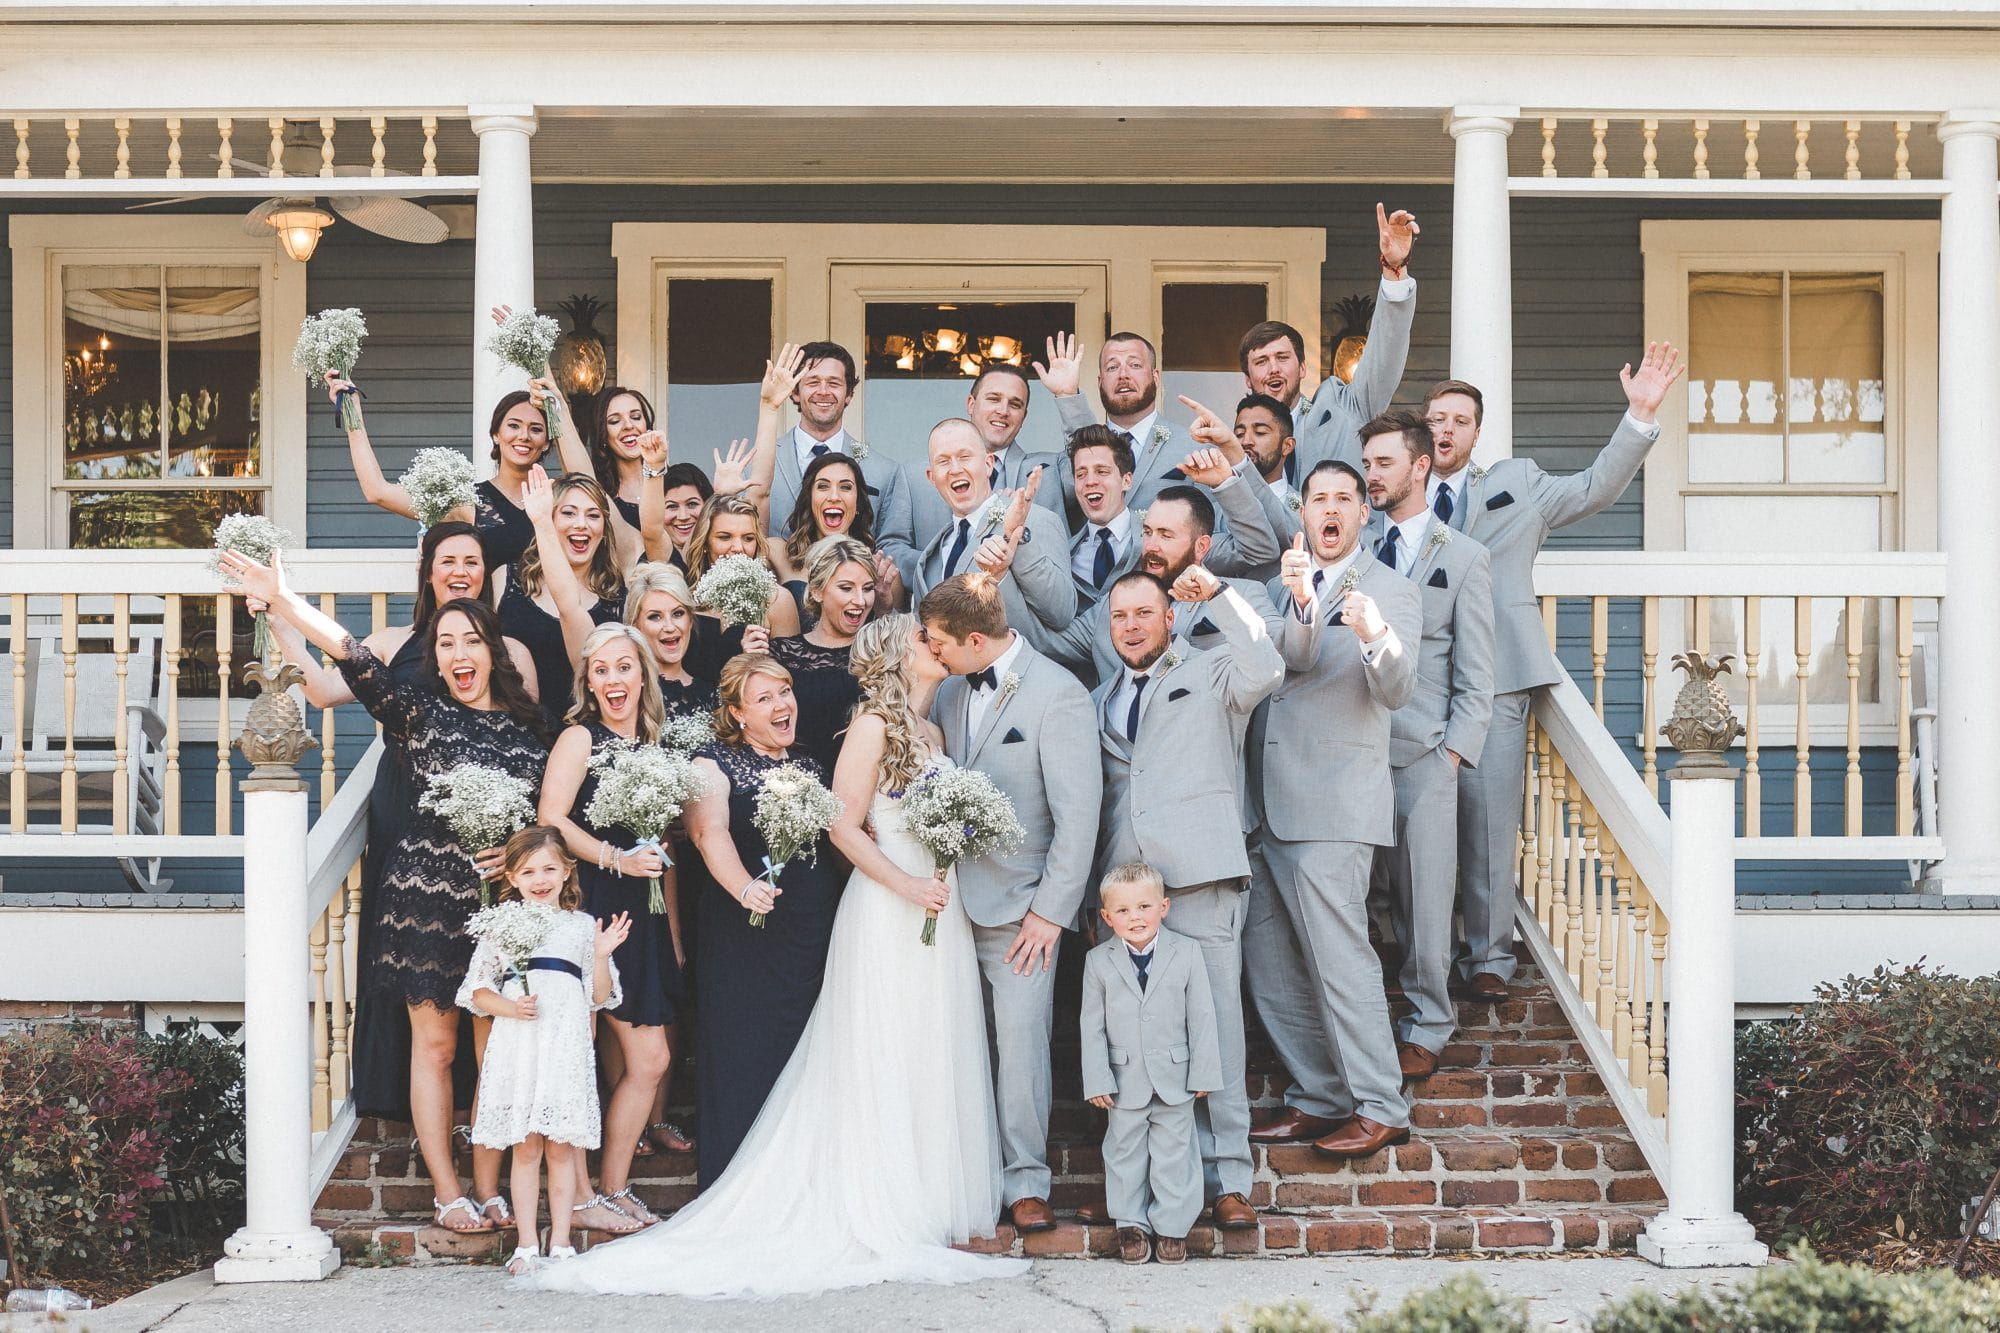 Rachel Doyle Photography - bride and groom kiss surrounded by cheering wedding party